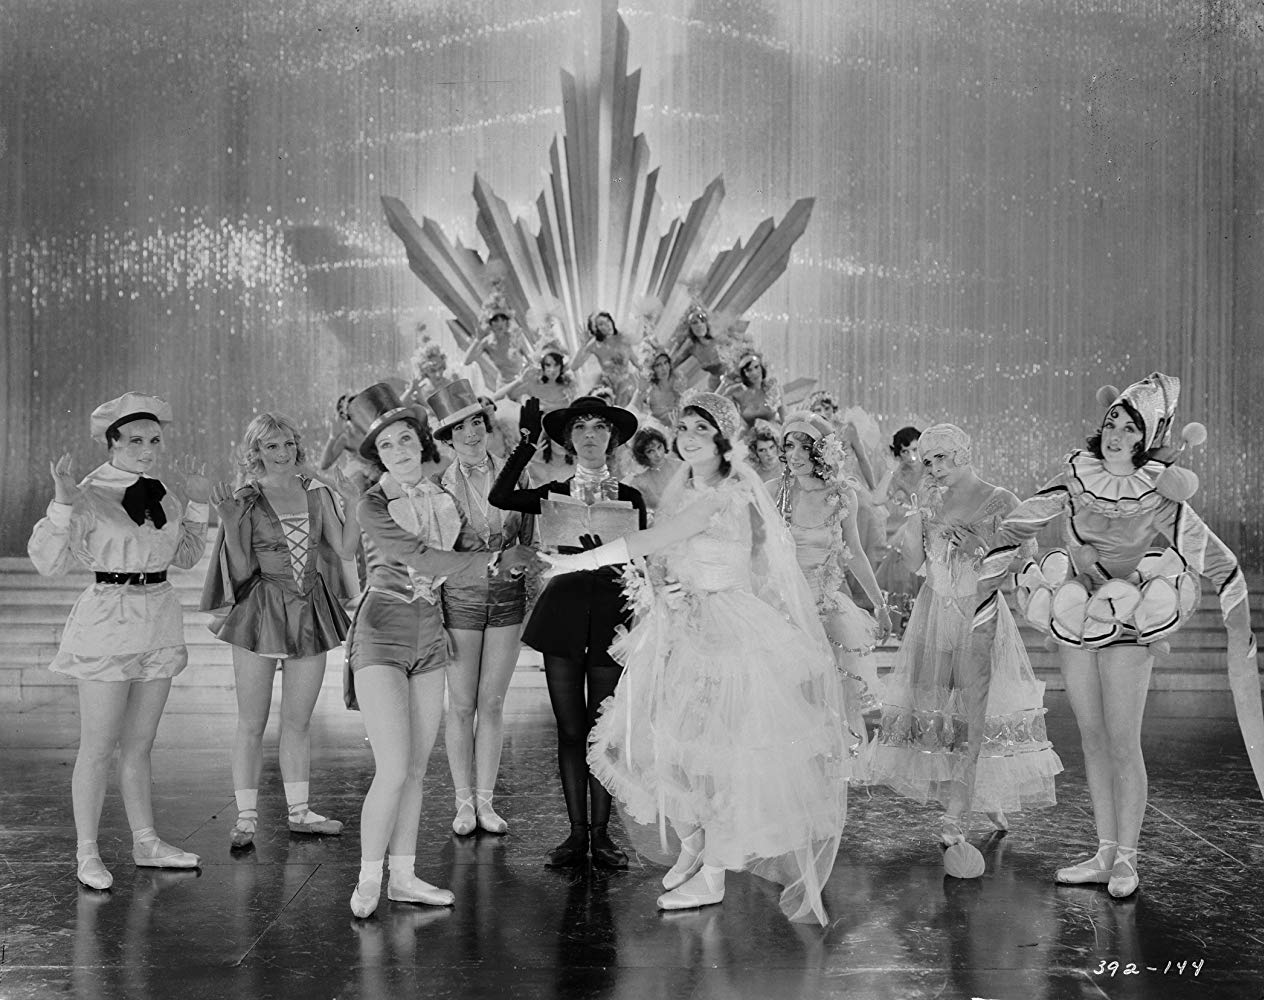 92. Melodia Broadwayu (1929)